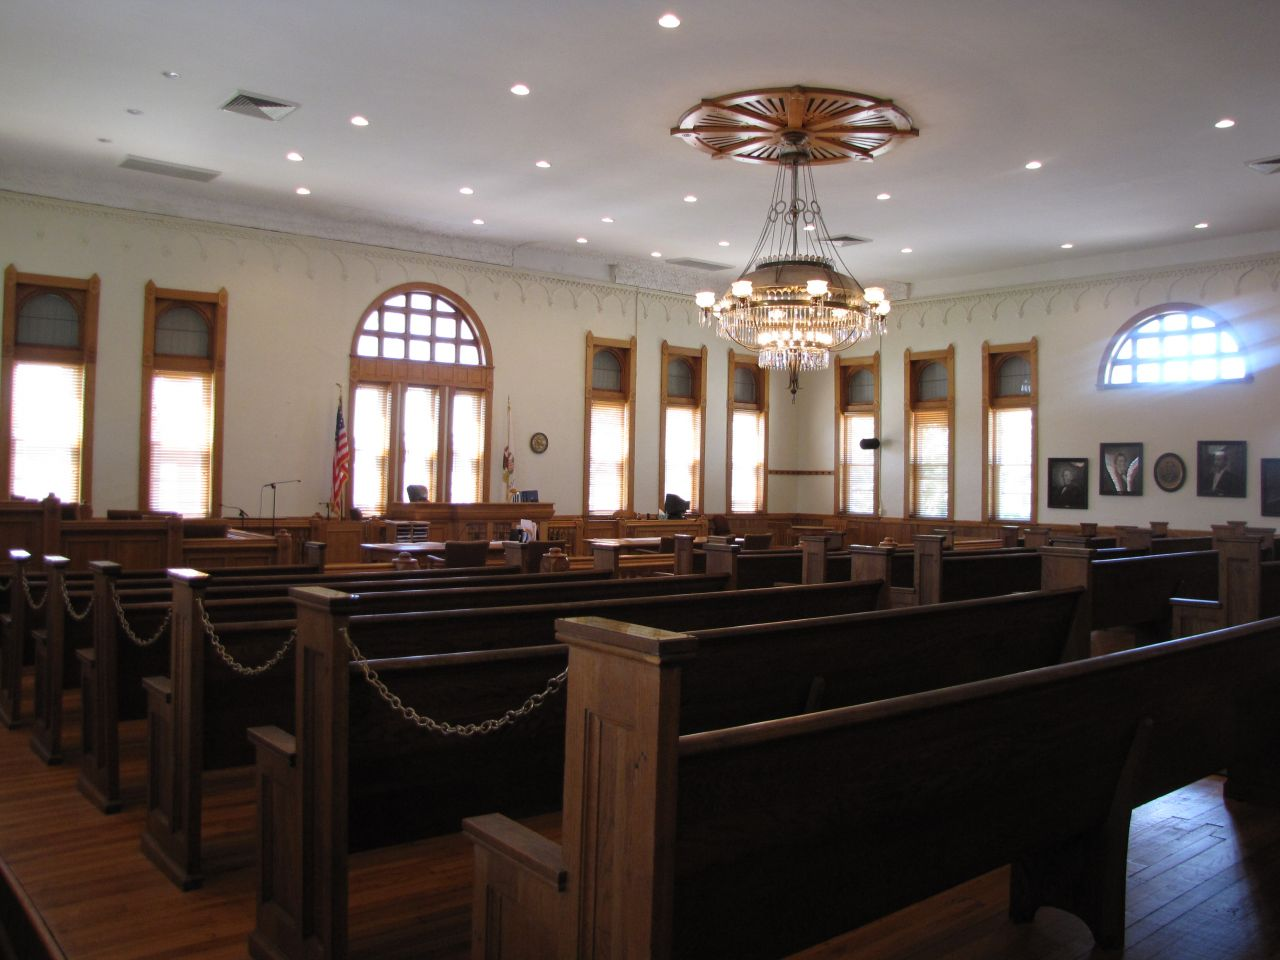 Main courtroom view